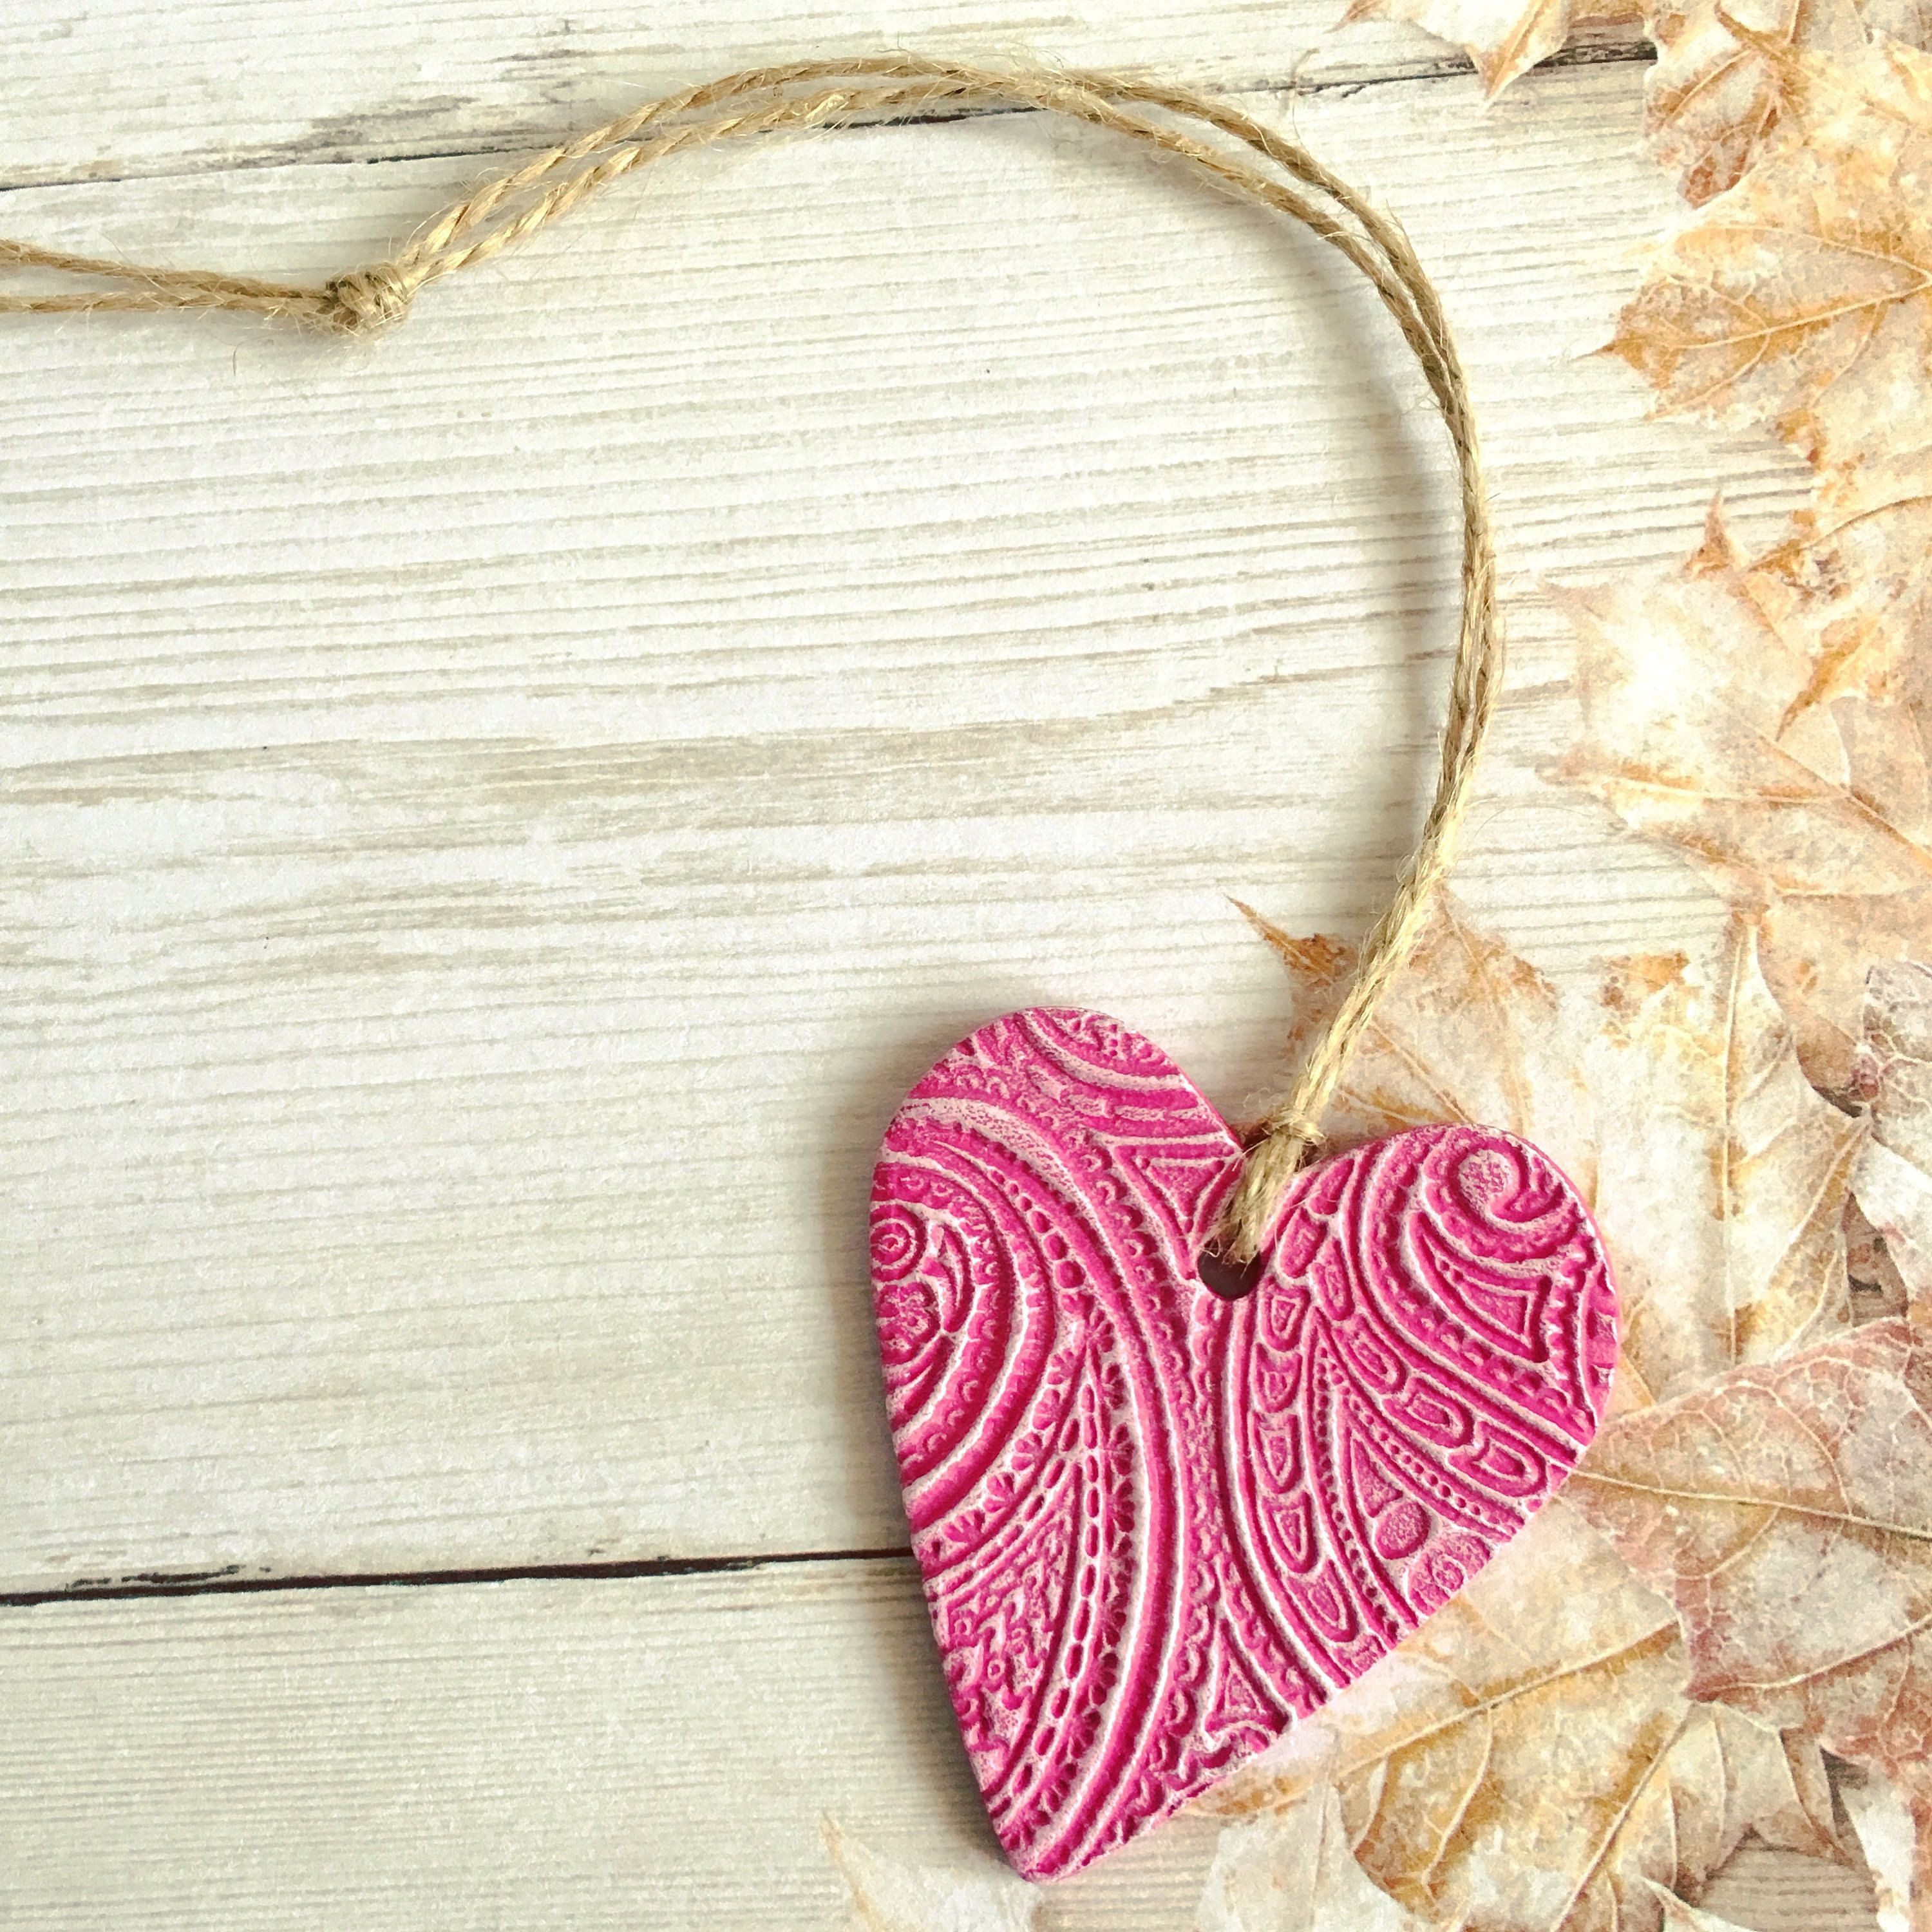 Pink Heart Decoration Hanging Heart Wall Hanging Door Hanger Heart Decor Heart Charm Clay Heart Clay Decora In 2020 Heart Decorations Hanging Hearts Pink Clay